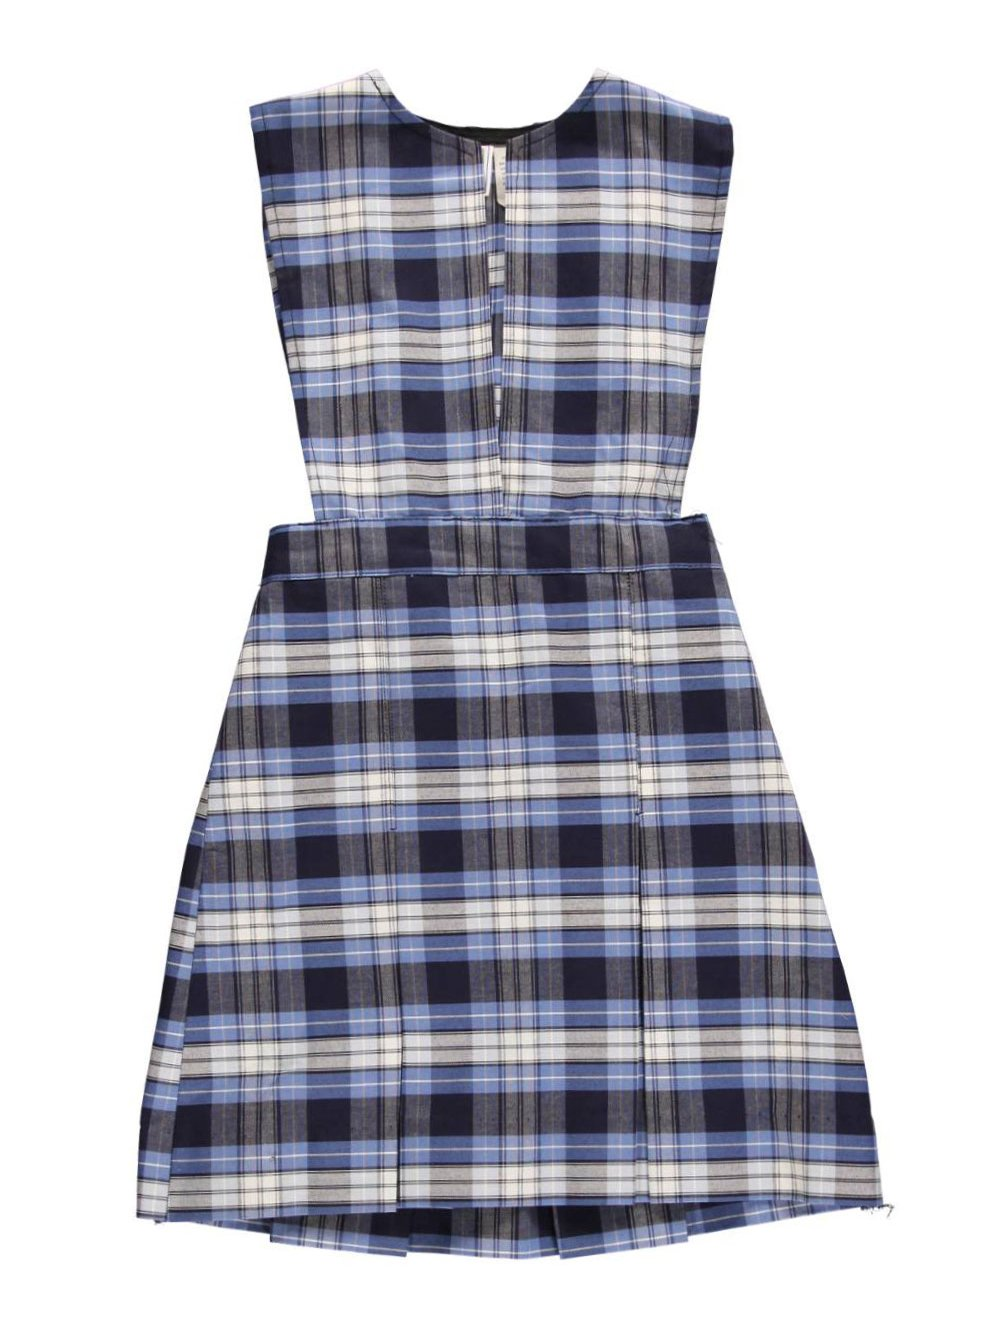 Cookie's Brand Big Girls' Slit Neck Jumper with Kick Pleats - Blue/White by Cookie's Kids (Image #1)